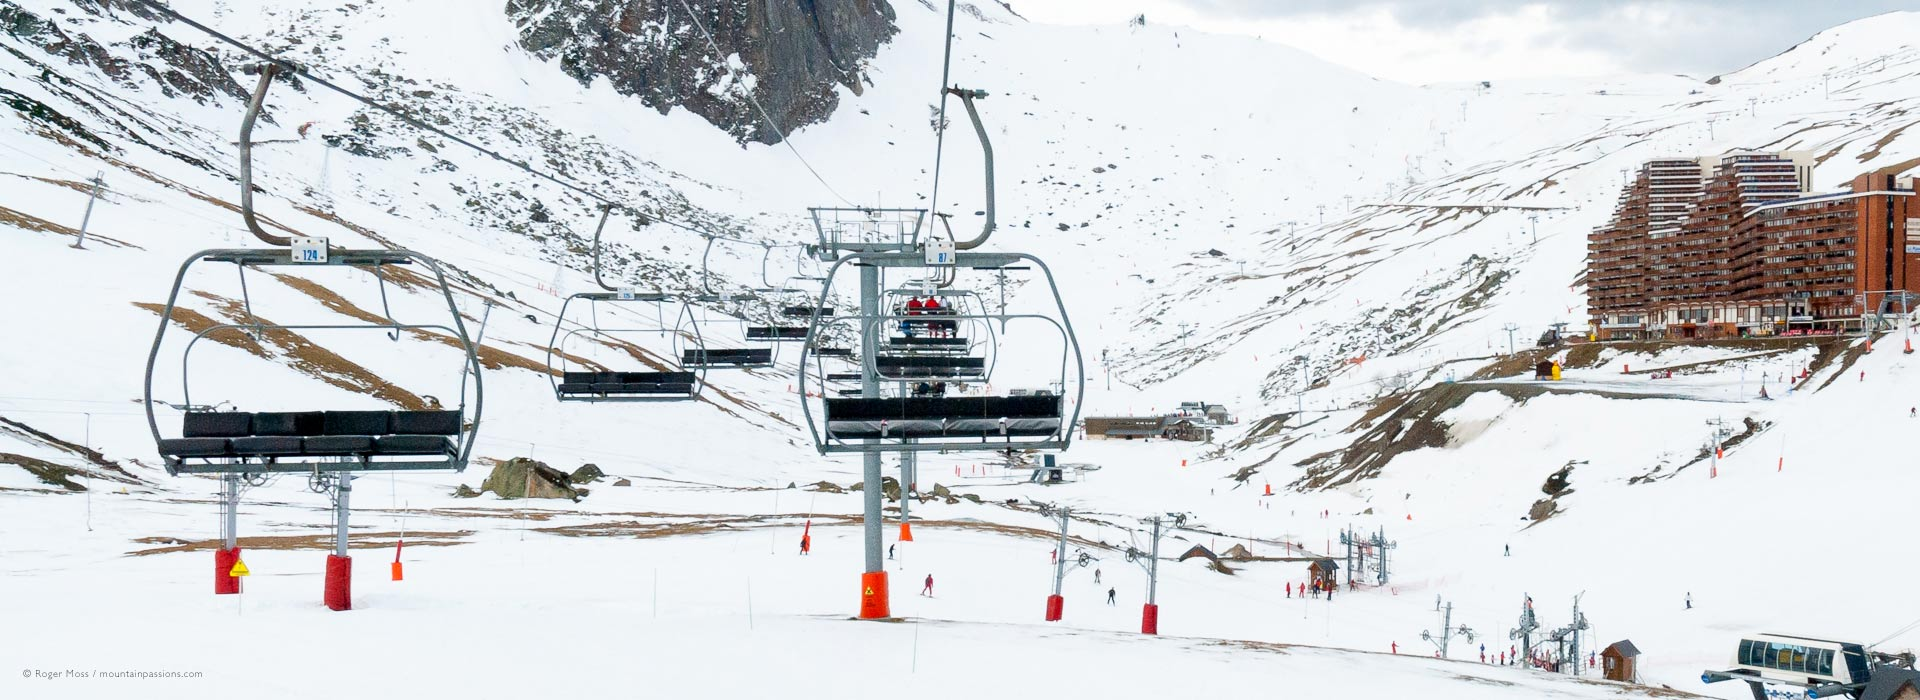 View from chairlift of ski area at La Mongie